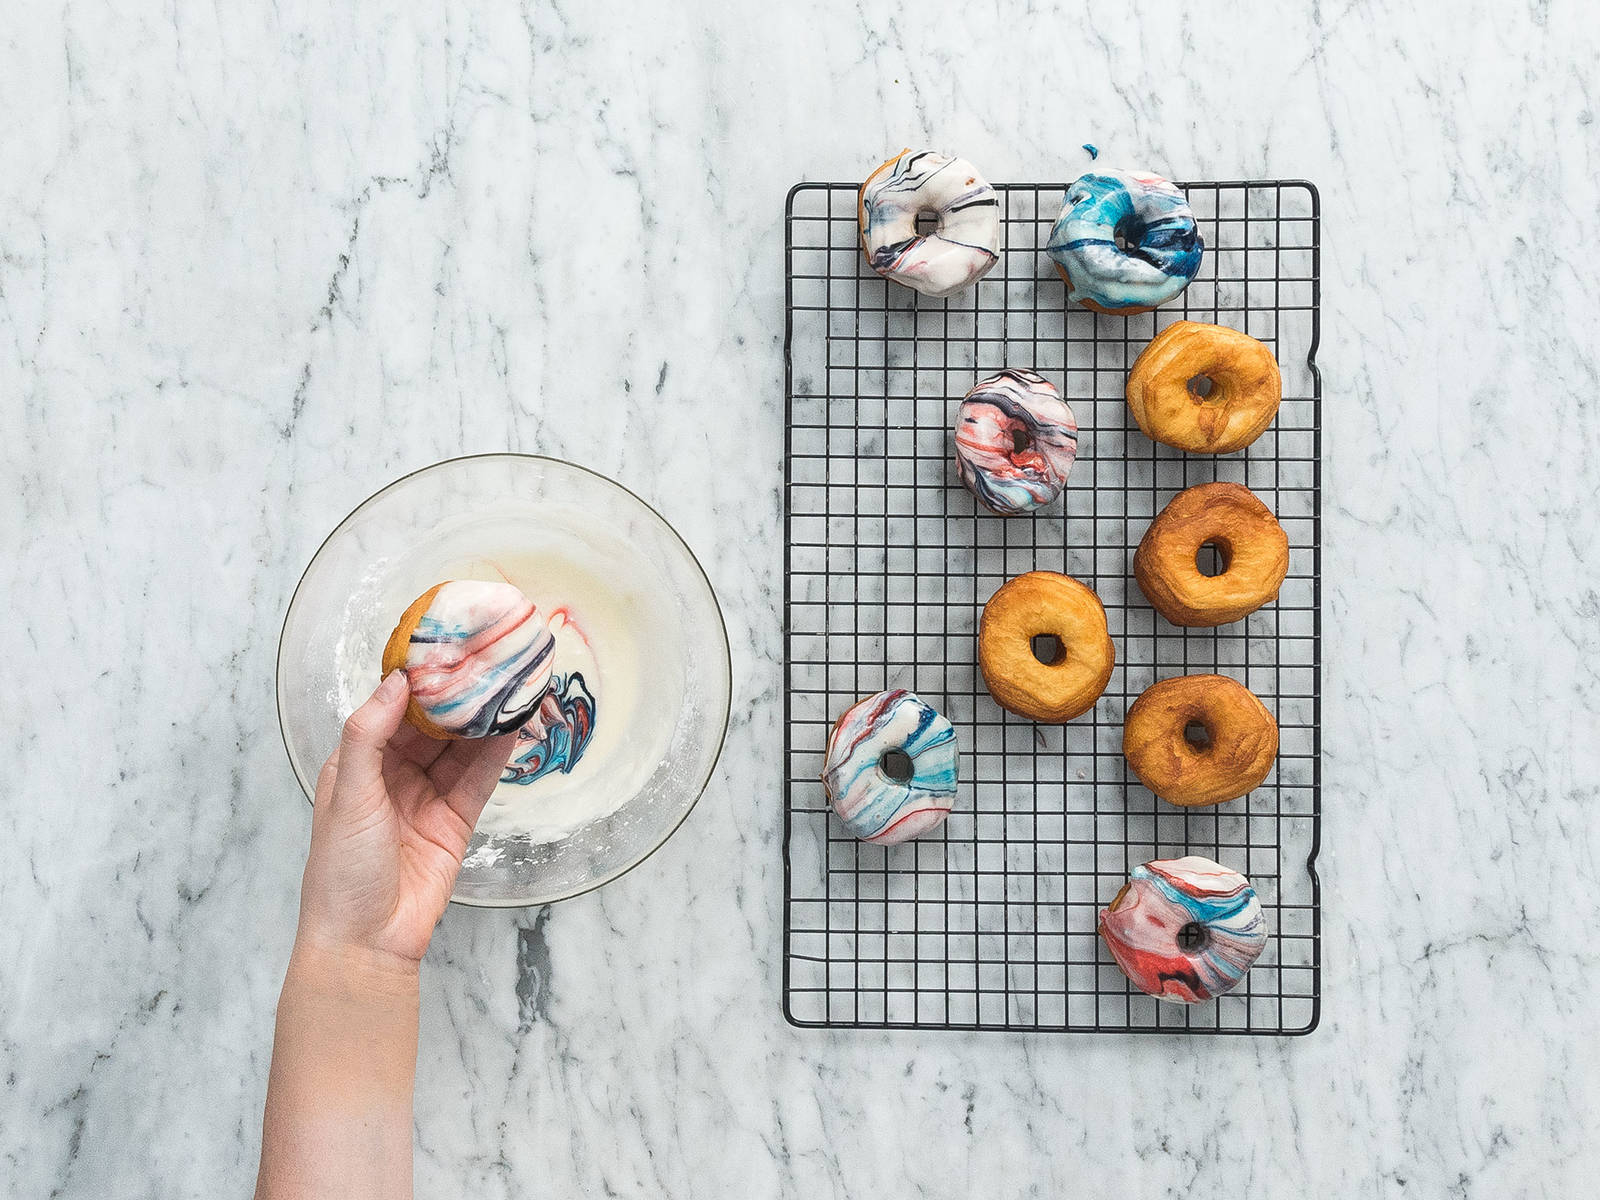 In a large bowl, mix the confectioner's sugar, cream, vanilla extract, and salt. Add the food coloring and swirl to make a pattern as desired. Dip the top side of the donut into the icing and place it bottom side-down on a wire rack to set. Sprinkle edible glitter over them and enjoy!